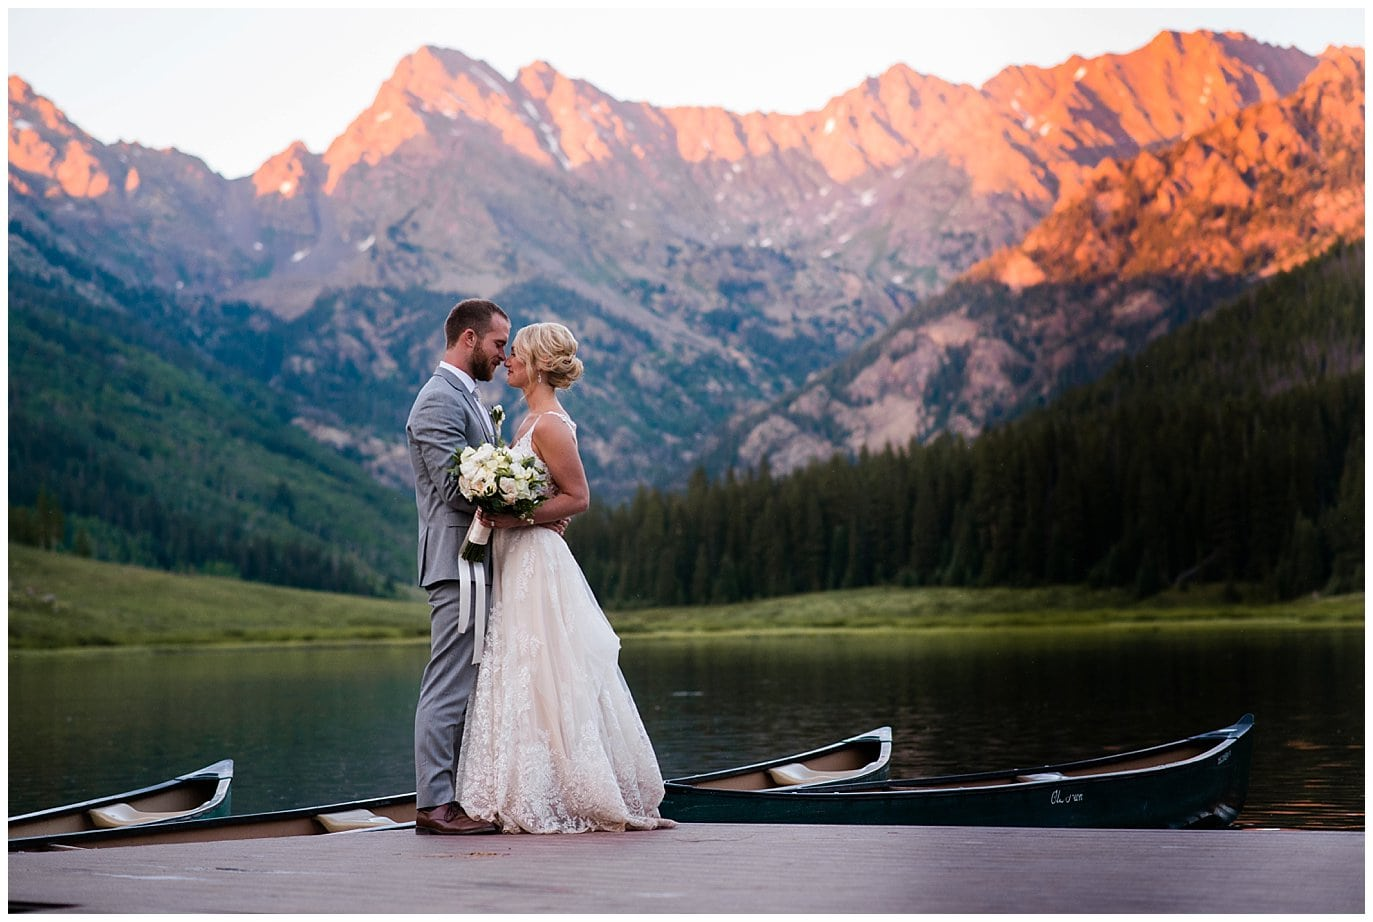 alpenglow sunset portraits on dock at Piney River Ranch wedding by Vail wedding photographer Jennie Crate, Photographer